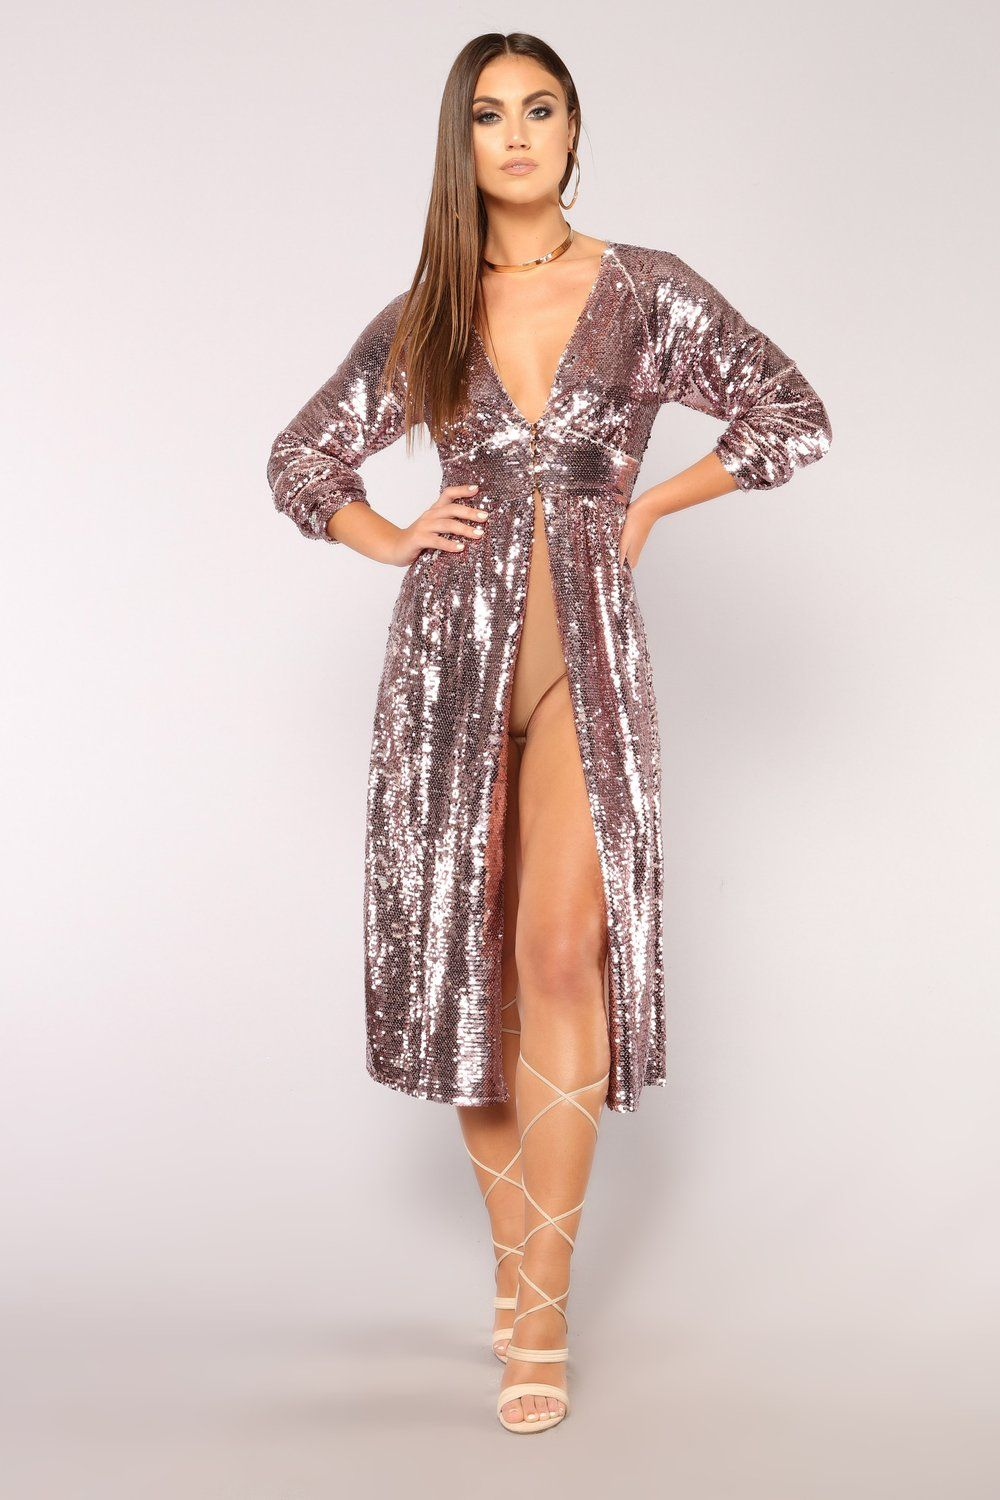 f6d73f76a6996d Show Stopper Sequin Duster - Pink | im just here for the style ...